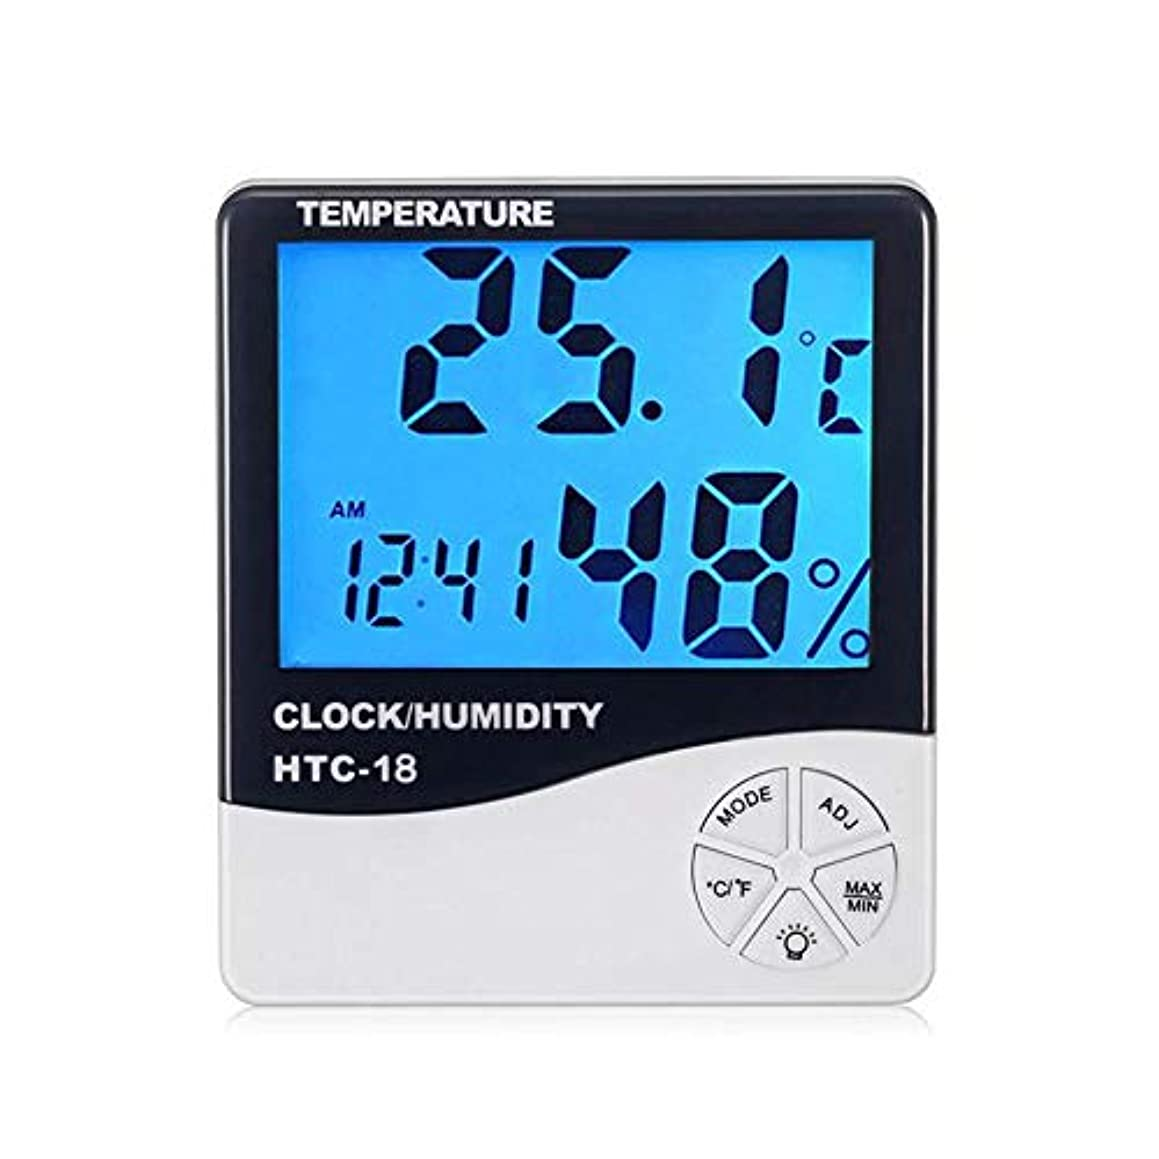 Umiwe Room Digital Thermometer, HTC-18 Accurate Hygrometer Humidity Thermometer Monitor Meter Digital Alarm Clock with LCD Screen for Room Home Office